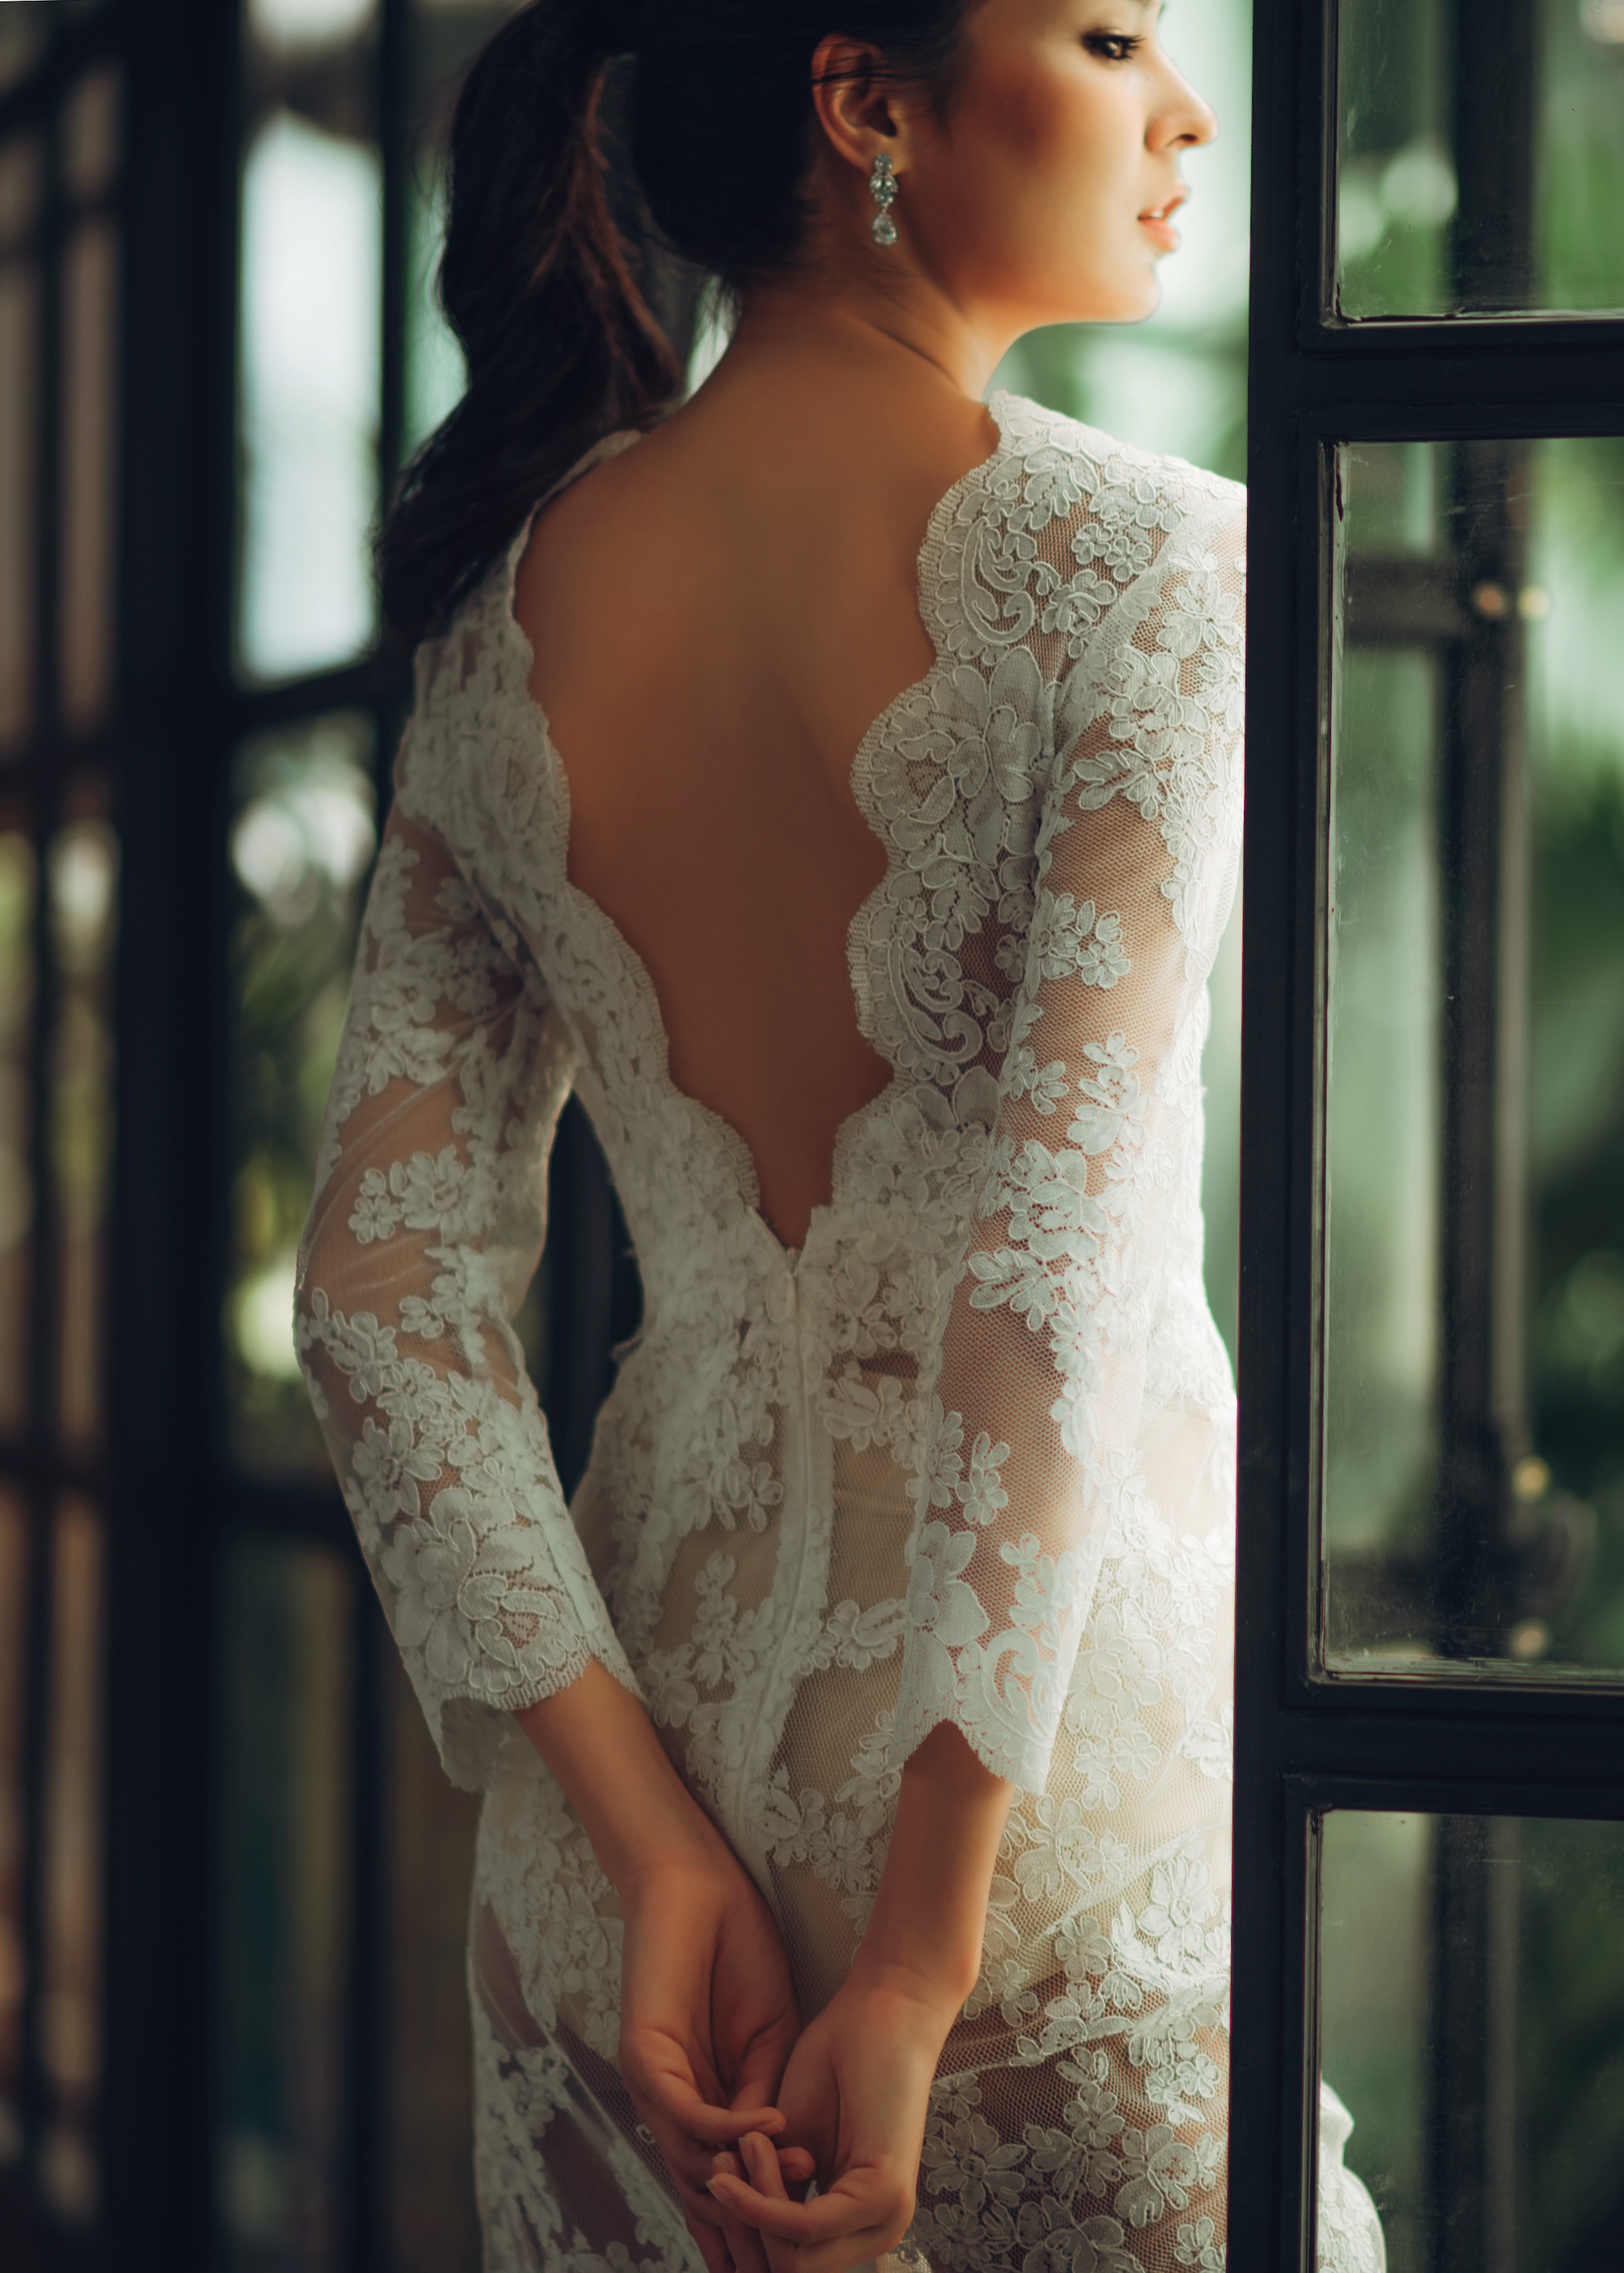 Tailor-made wedding gowns - Discover your Uniqueness at ATIP & CHOO